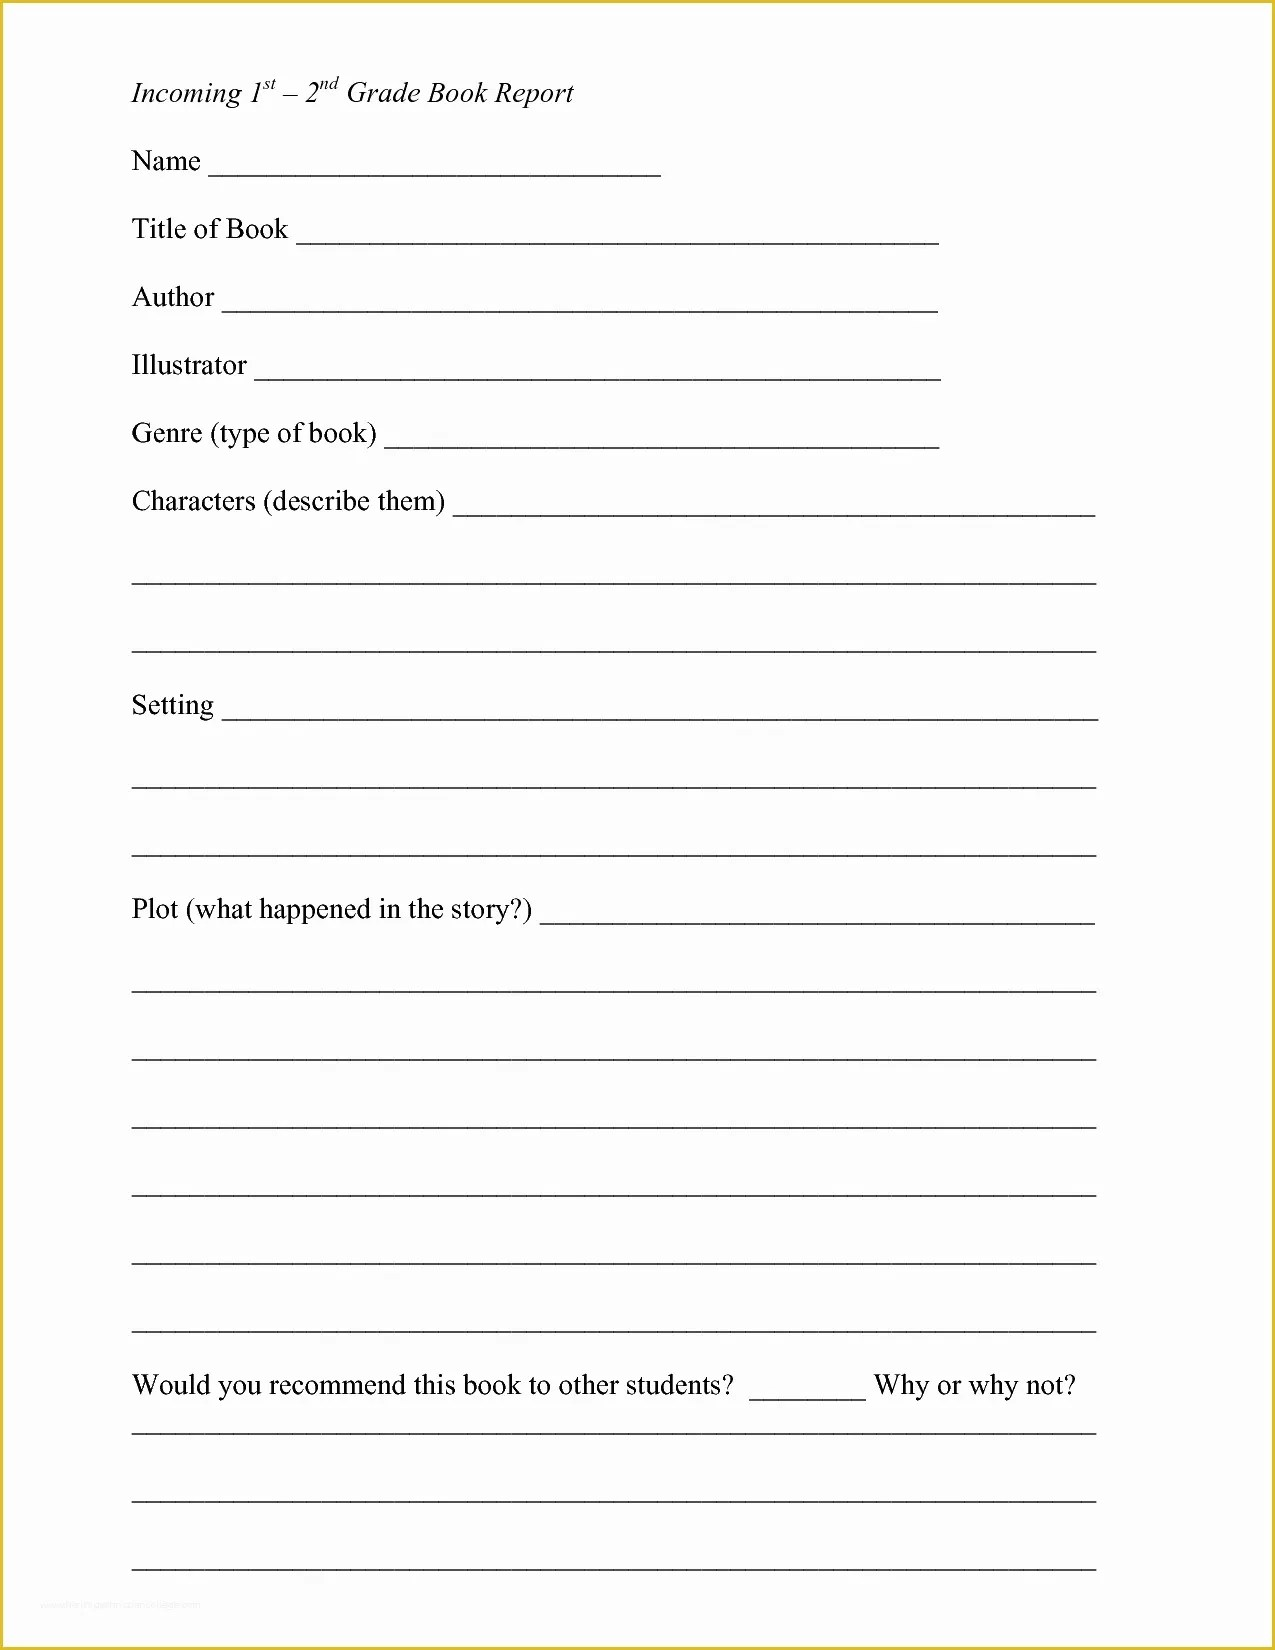 2nd Grade Book Report Template Free Of Book Summary